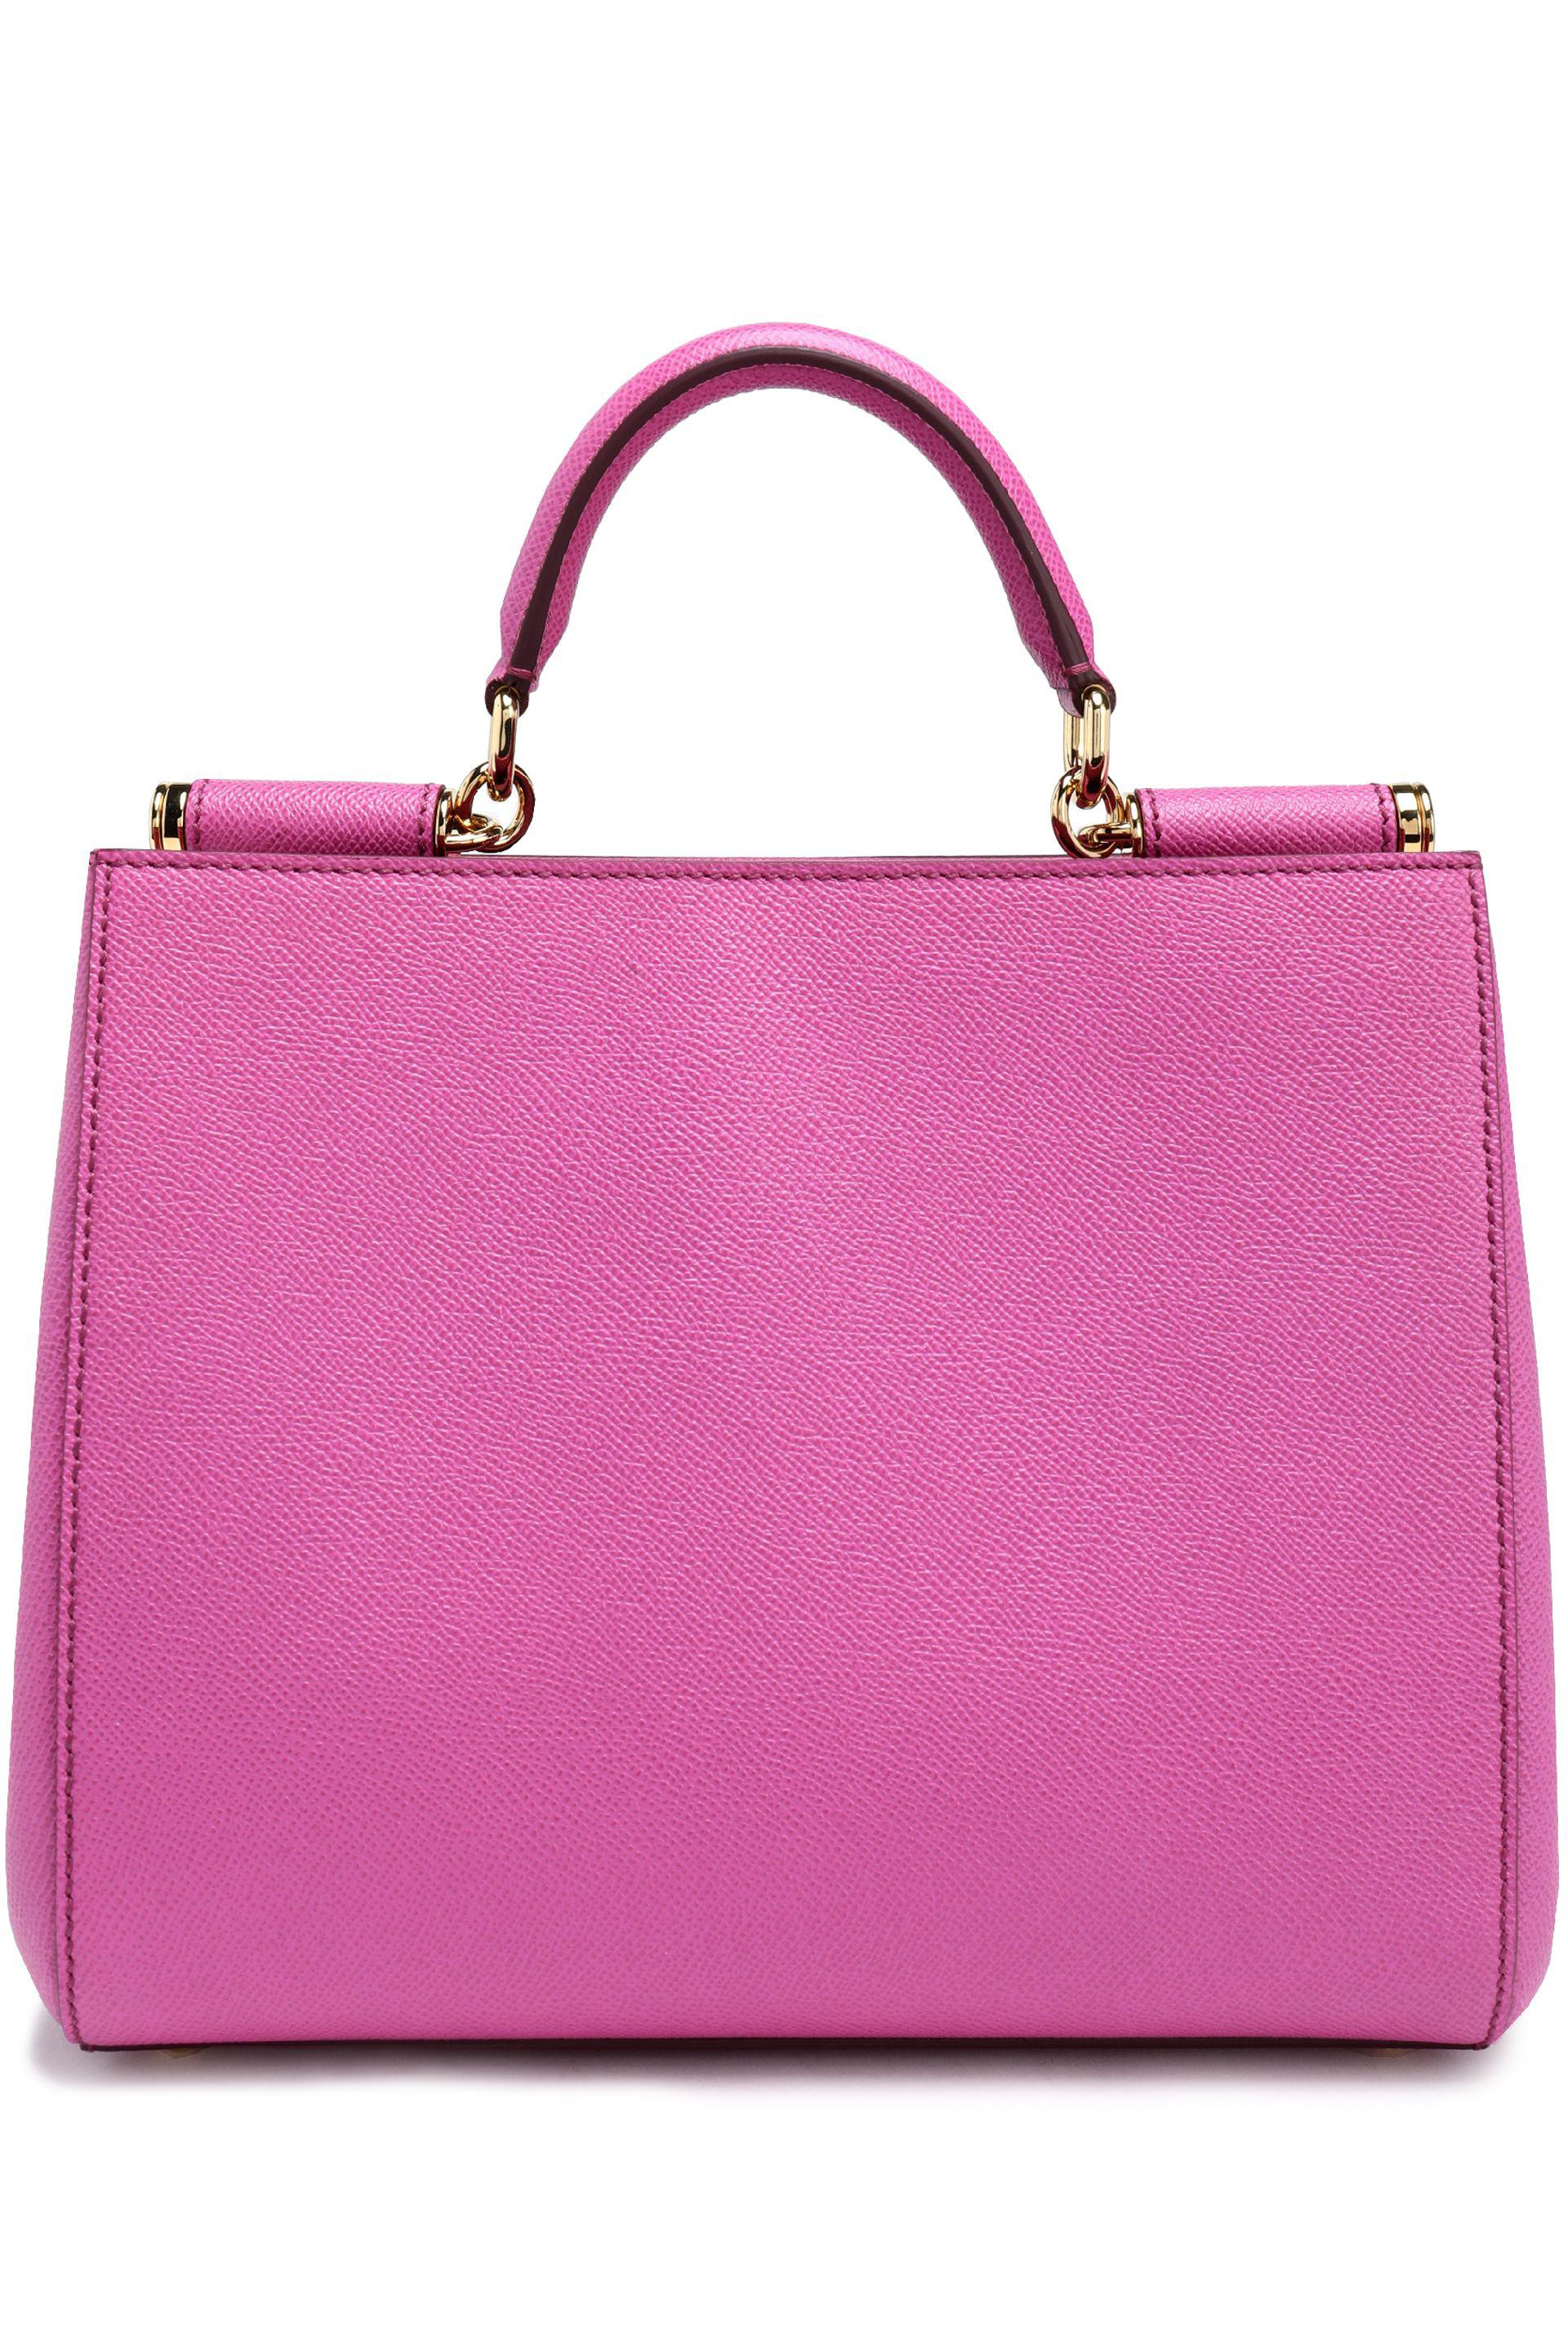 Lyst - Dolce   Gabbana Textured-leather Shoulder Bag in Pink a9fb57a76746c